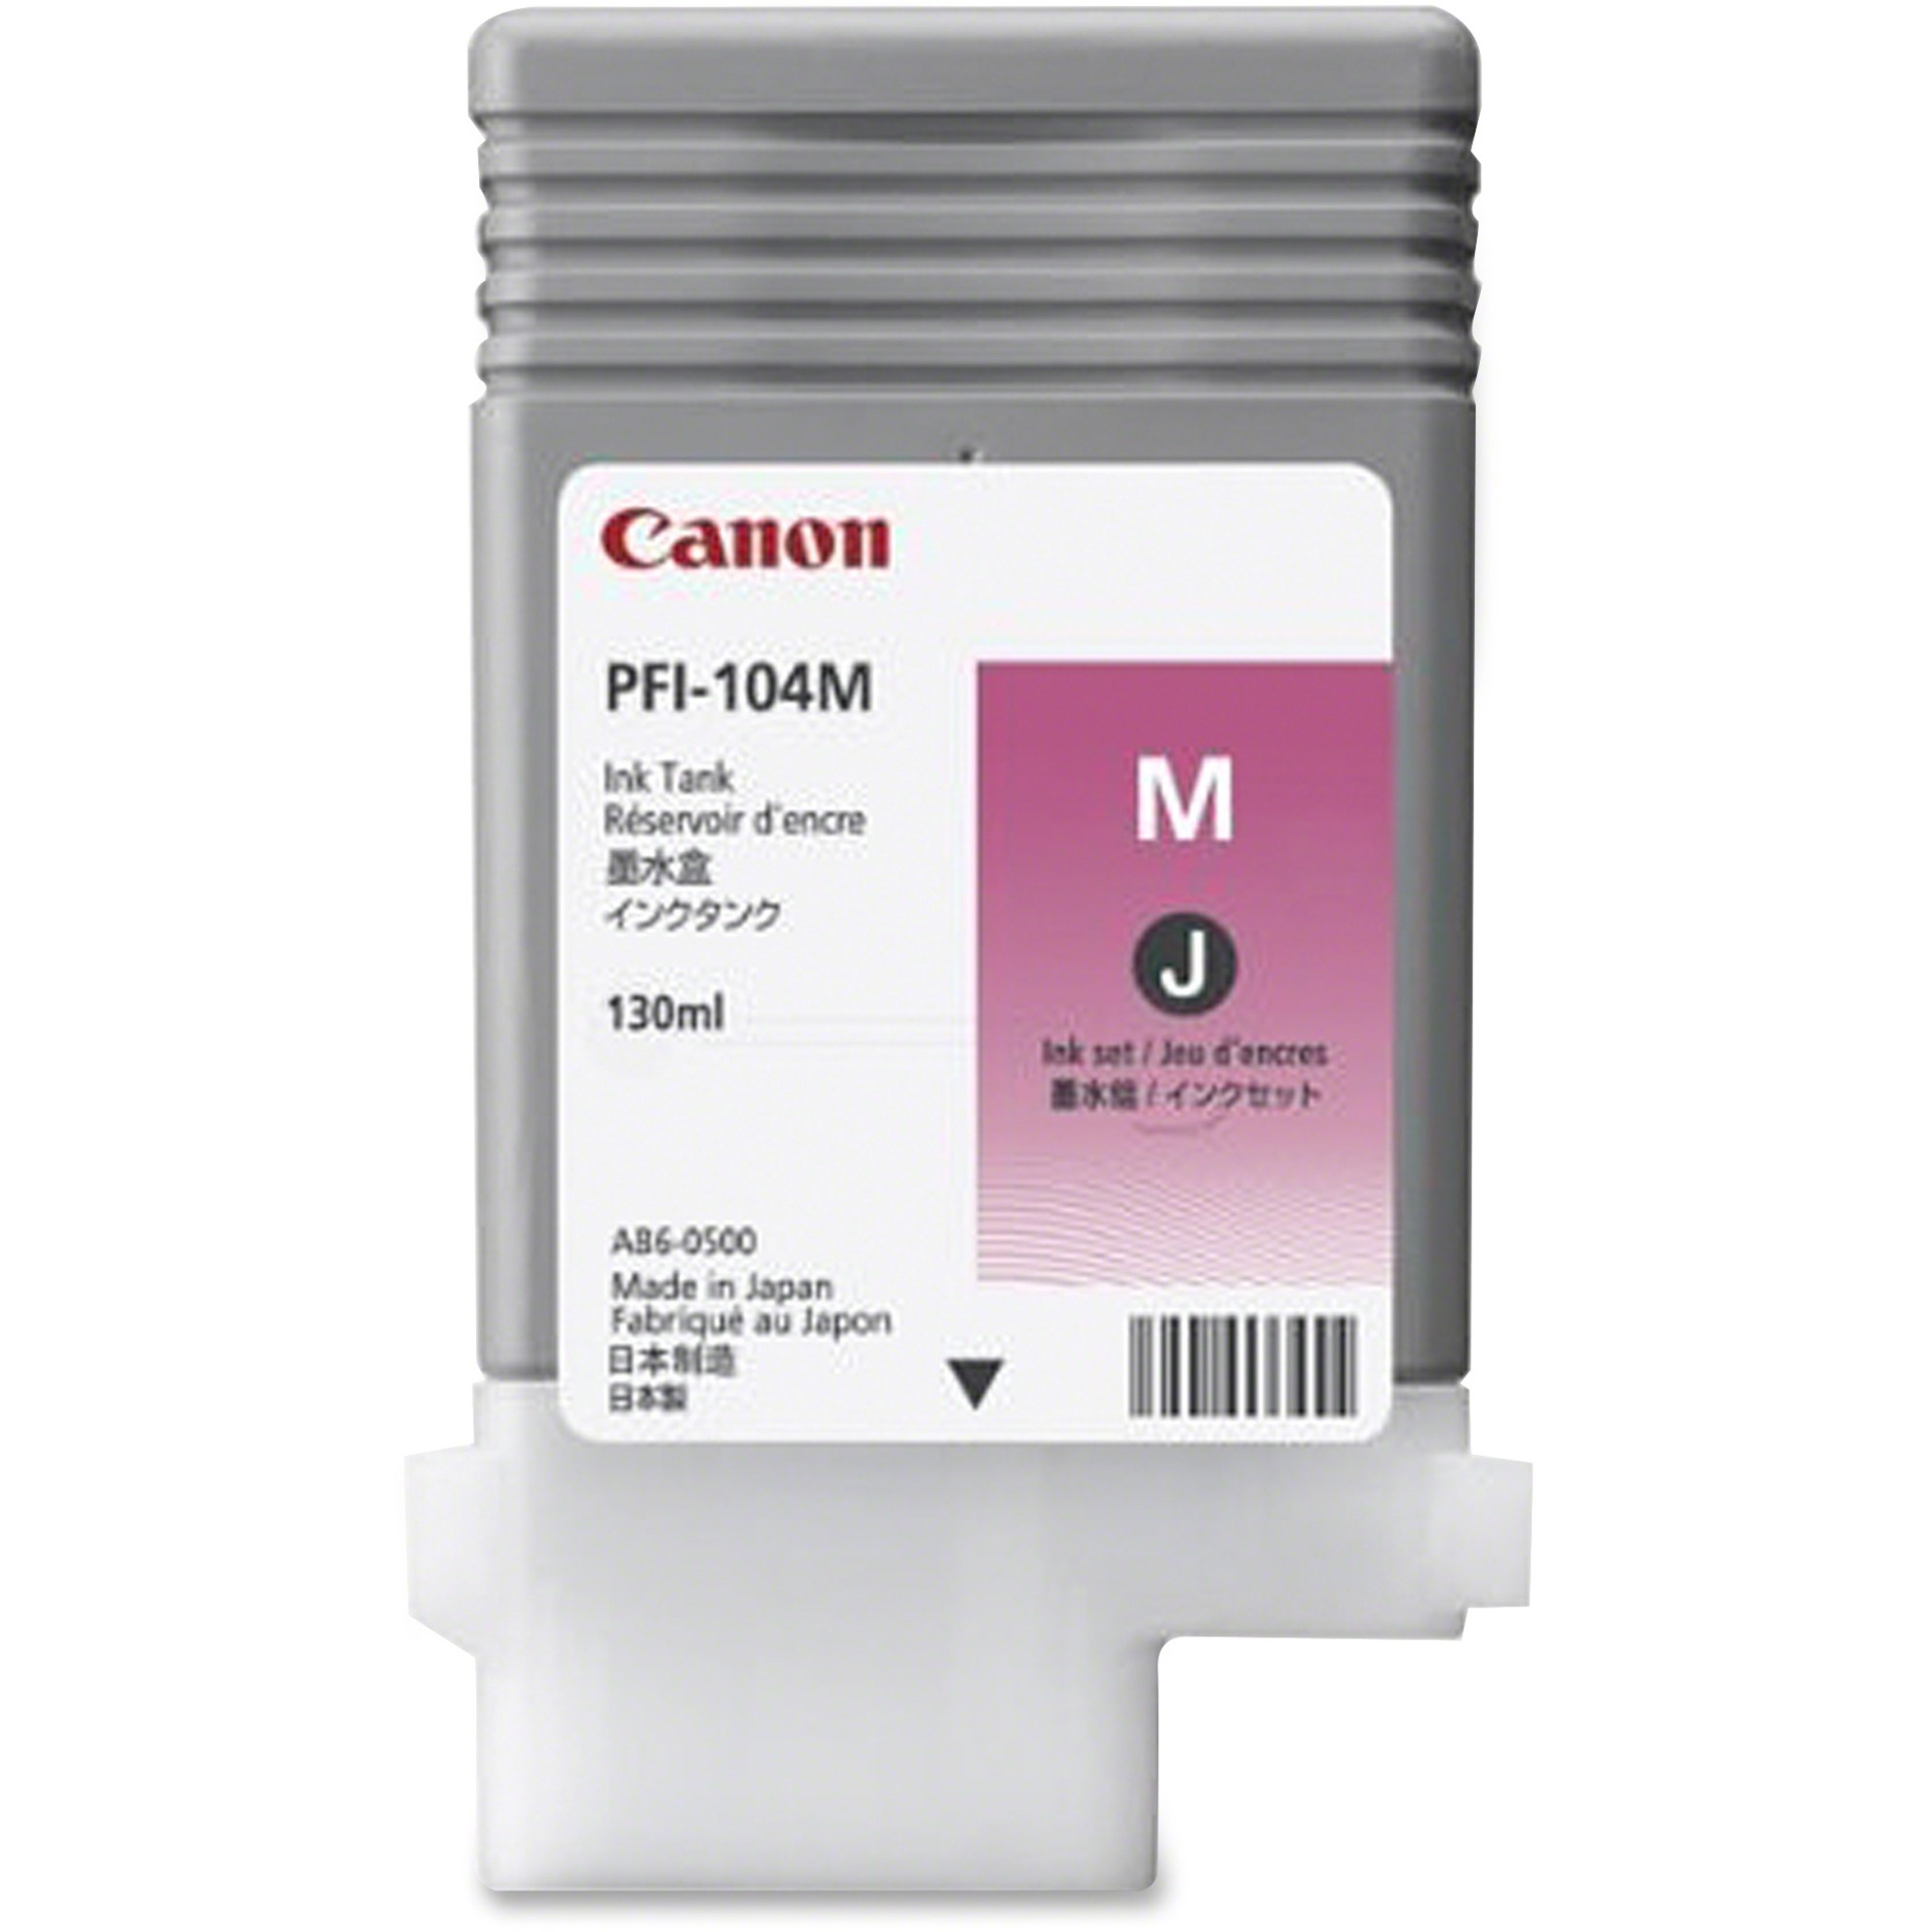 Canon PFI-104M Ink Cartridge - Magenta